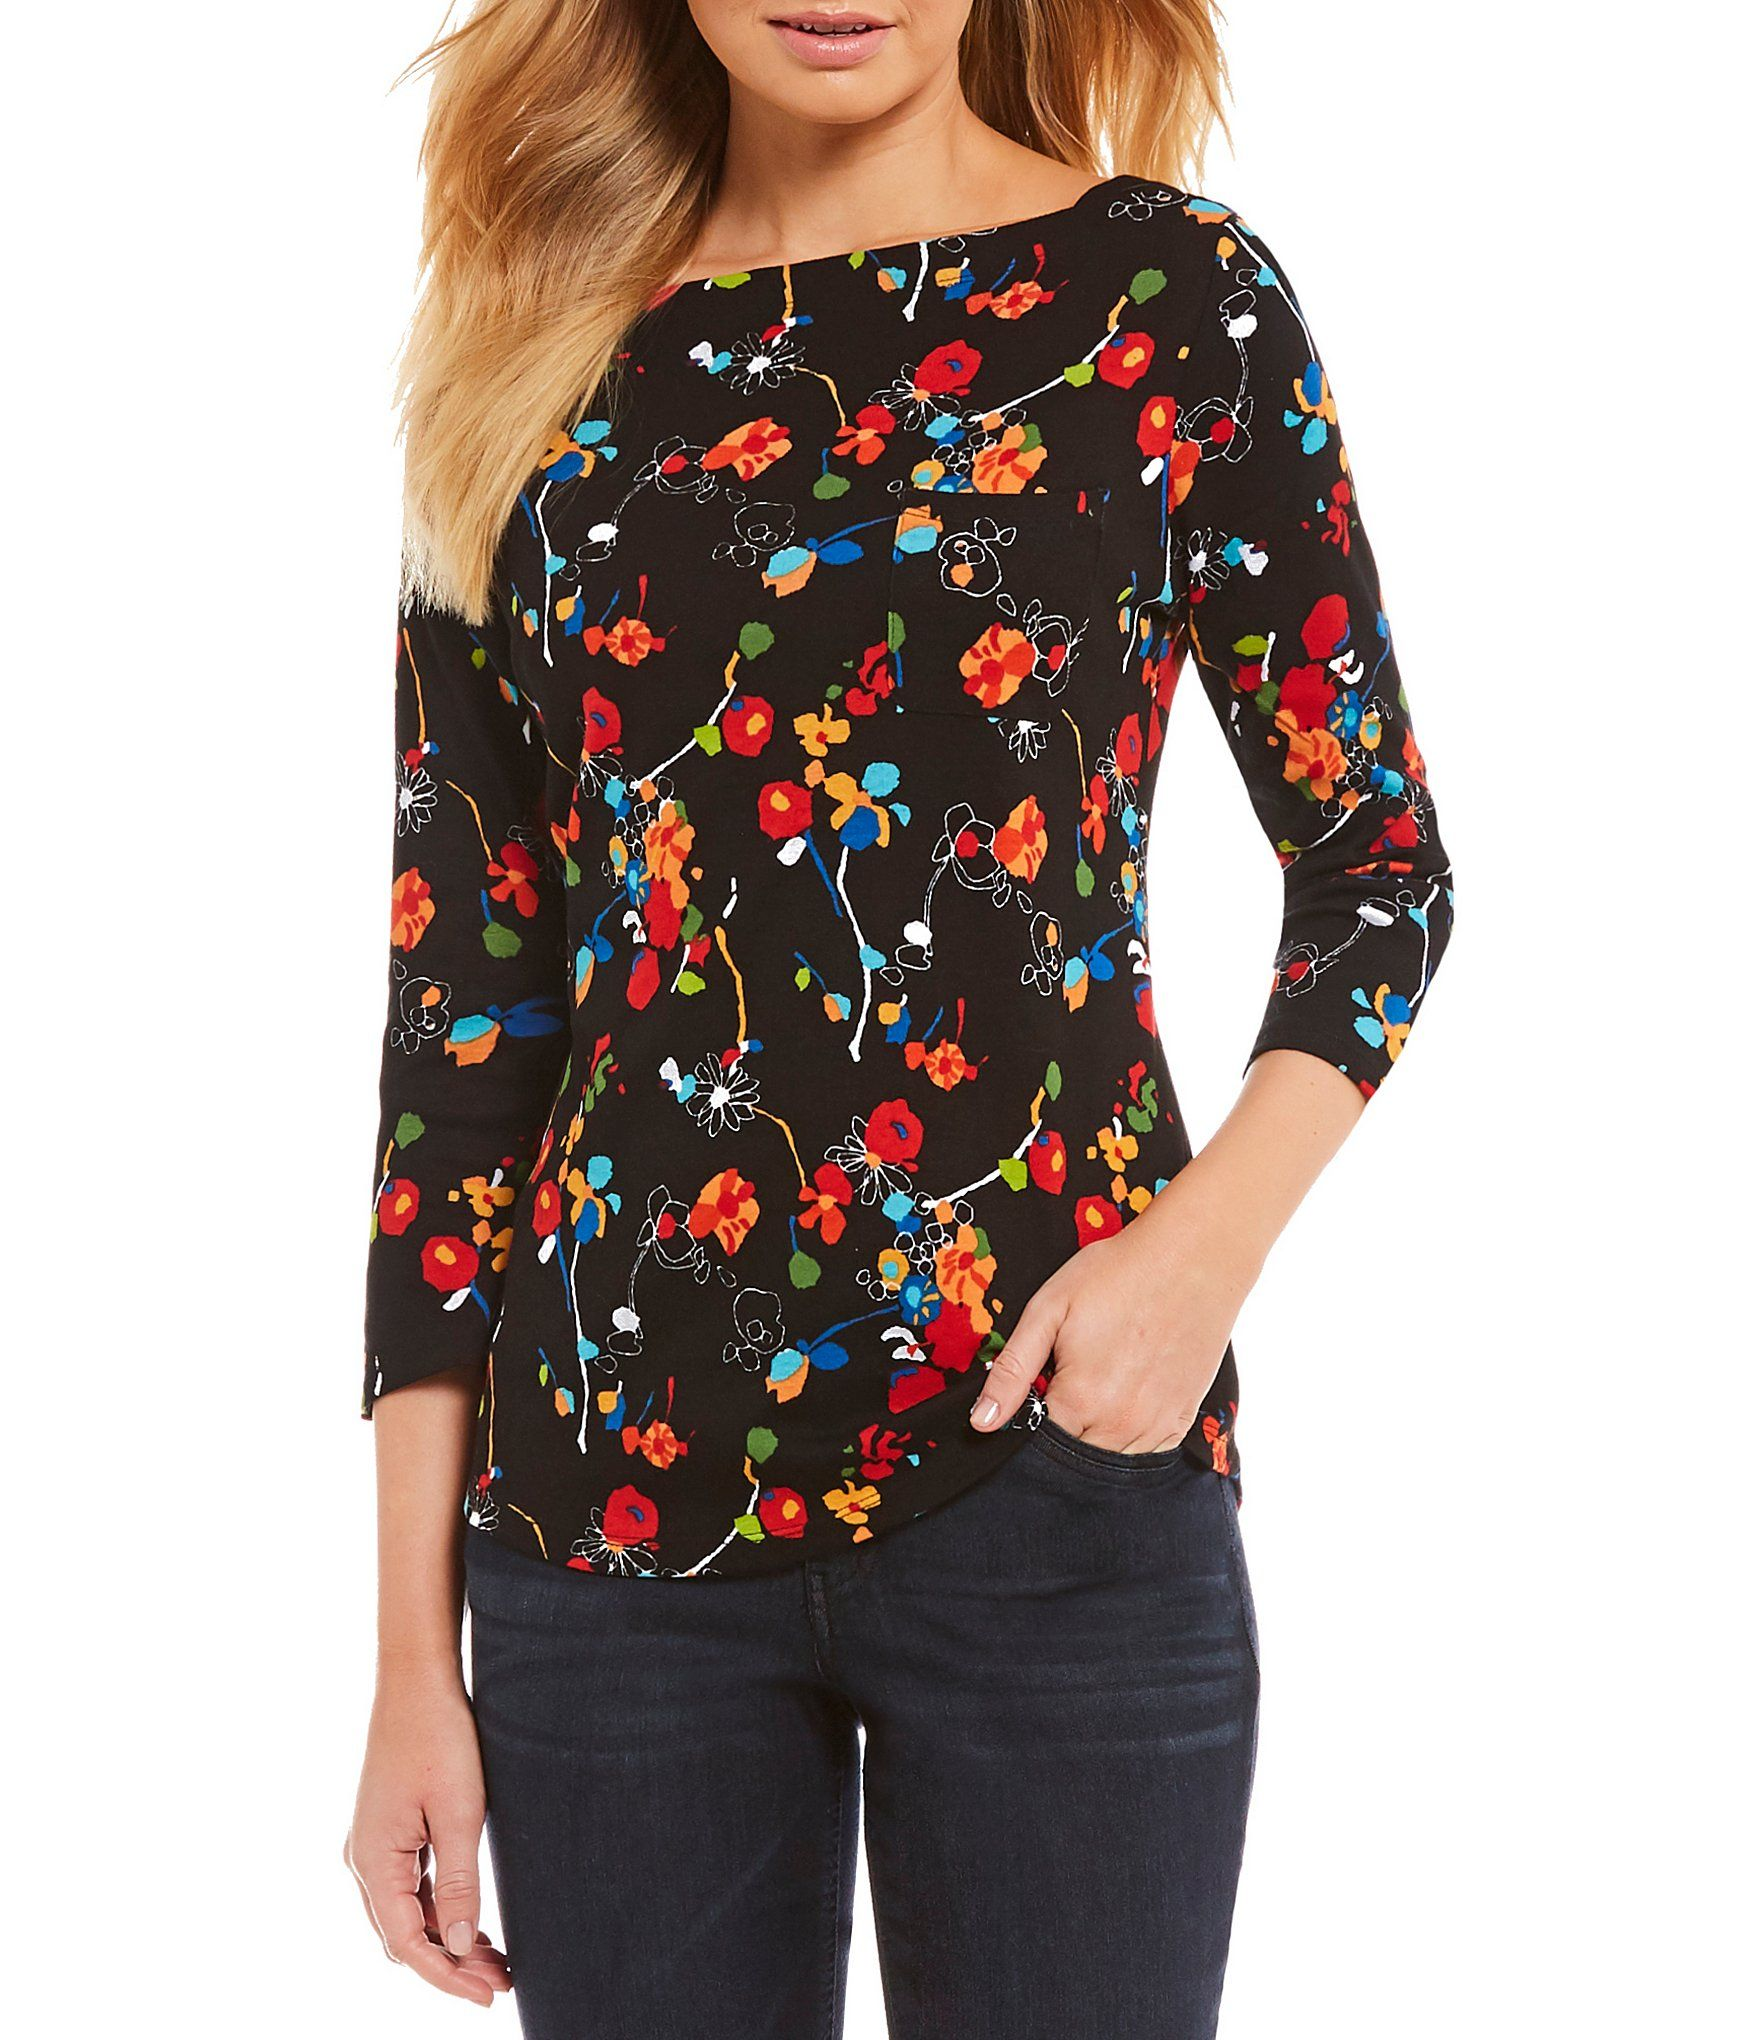 5f08c170d0a8ce Westbound 3 4 Sleeve Boatneck Top  Dillards Floral Tops